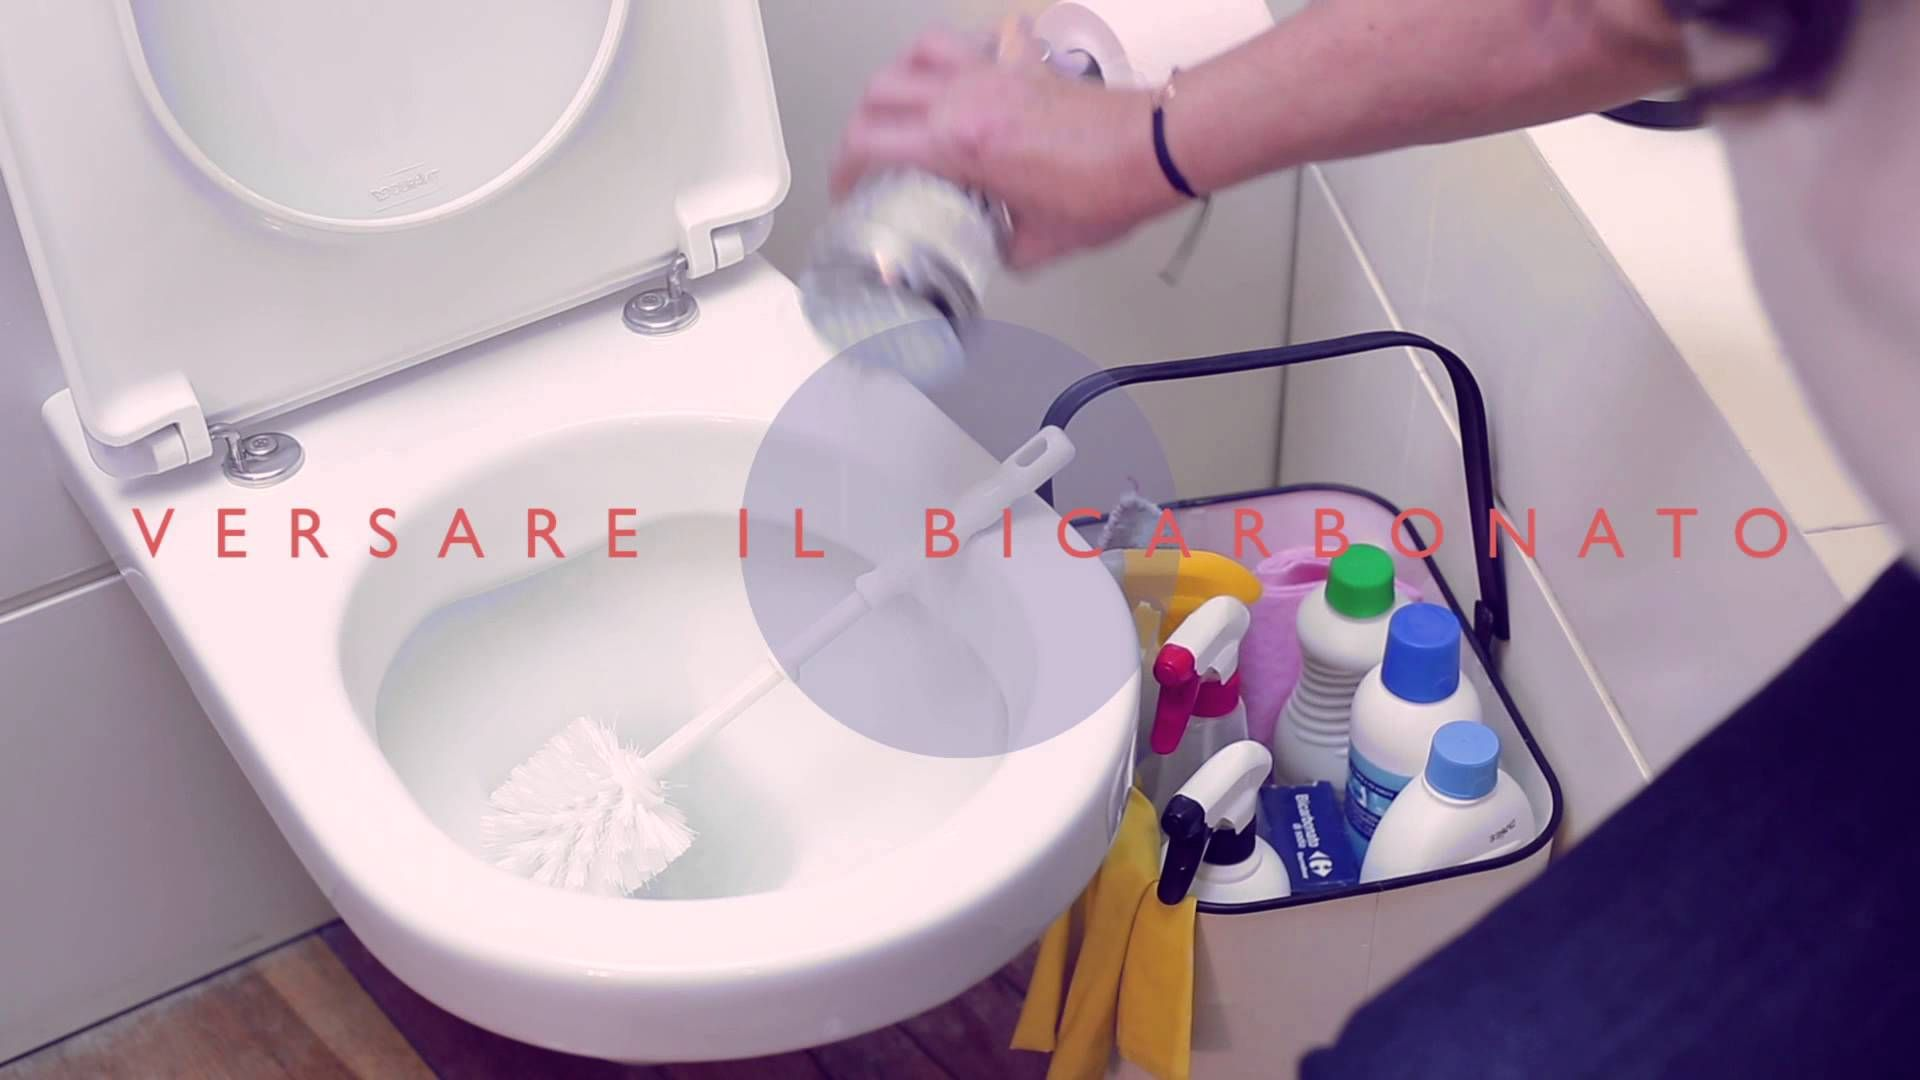 Come pulire il wc con il bicarbonato spring cleaning tips